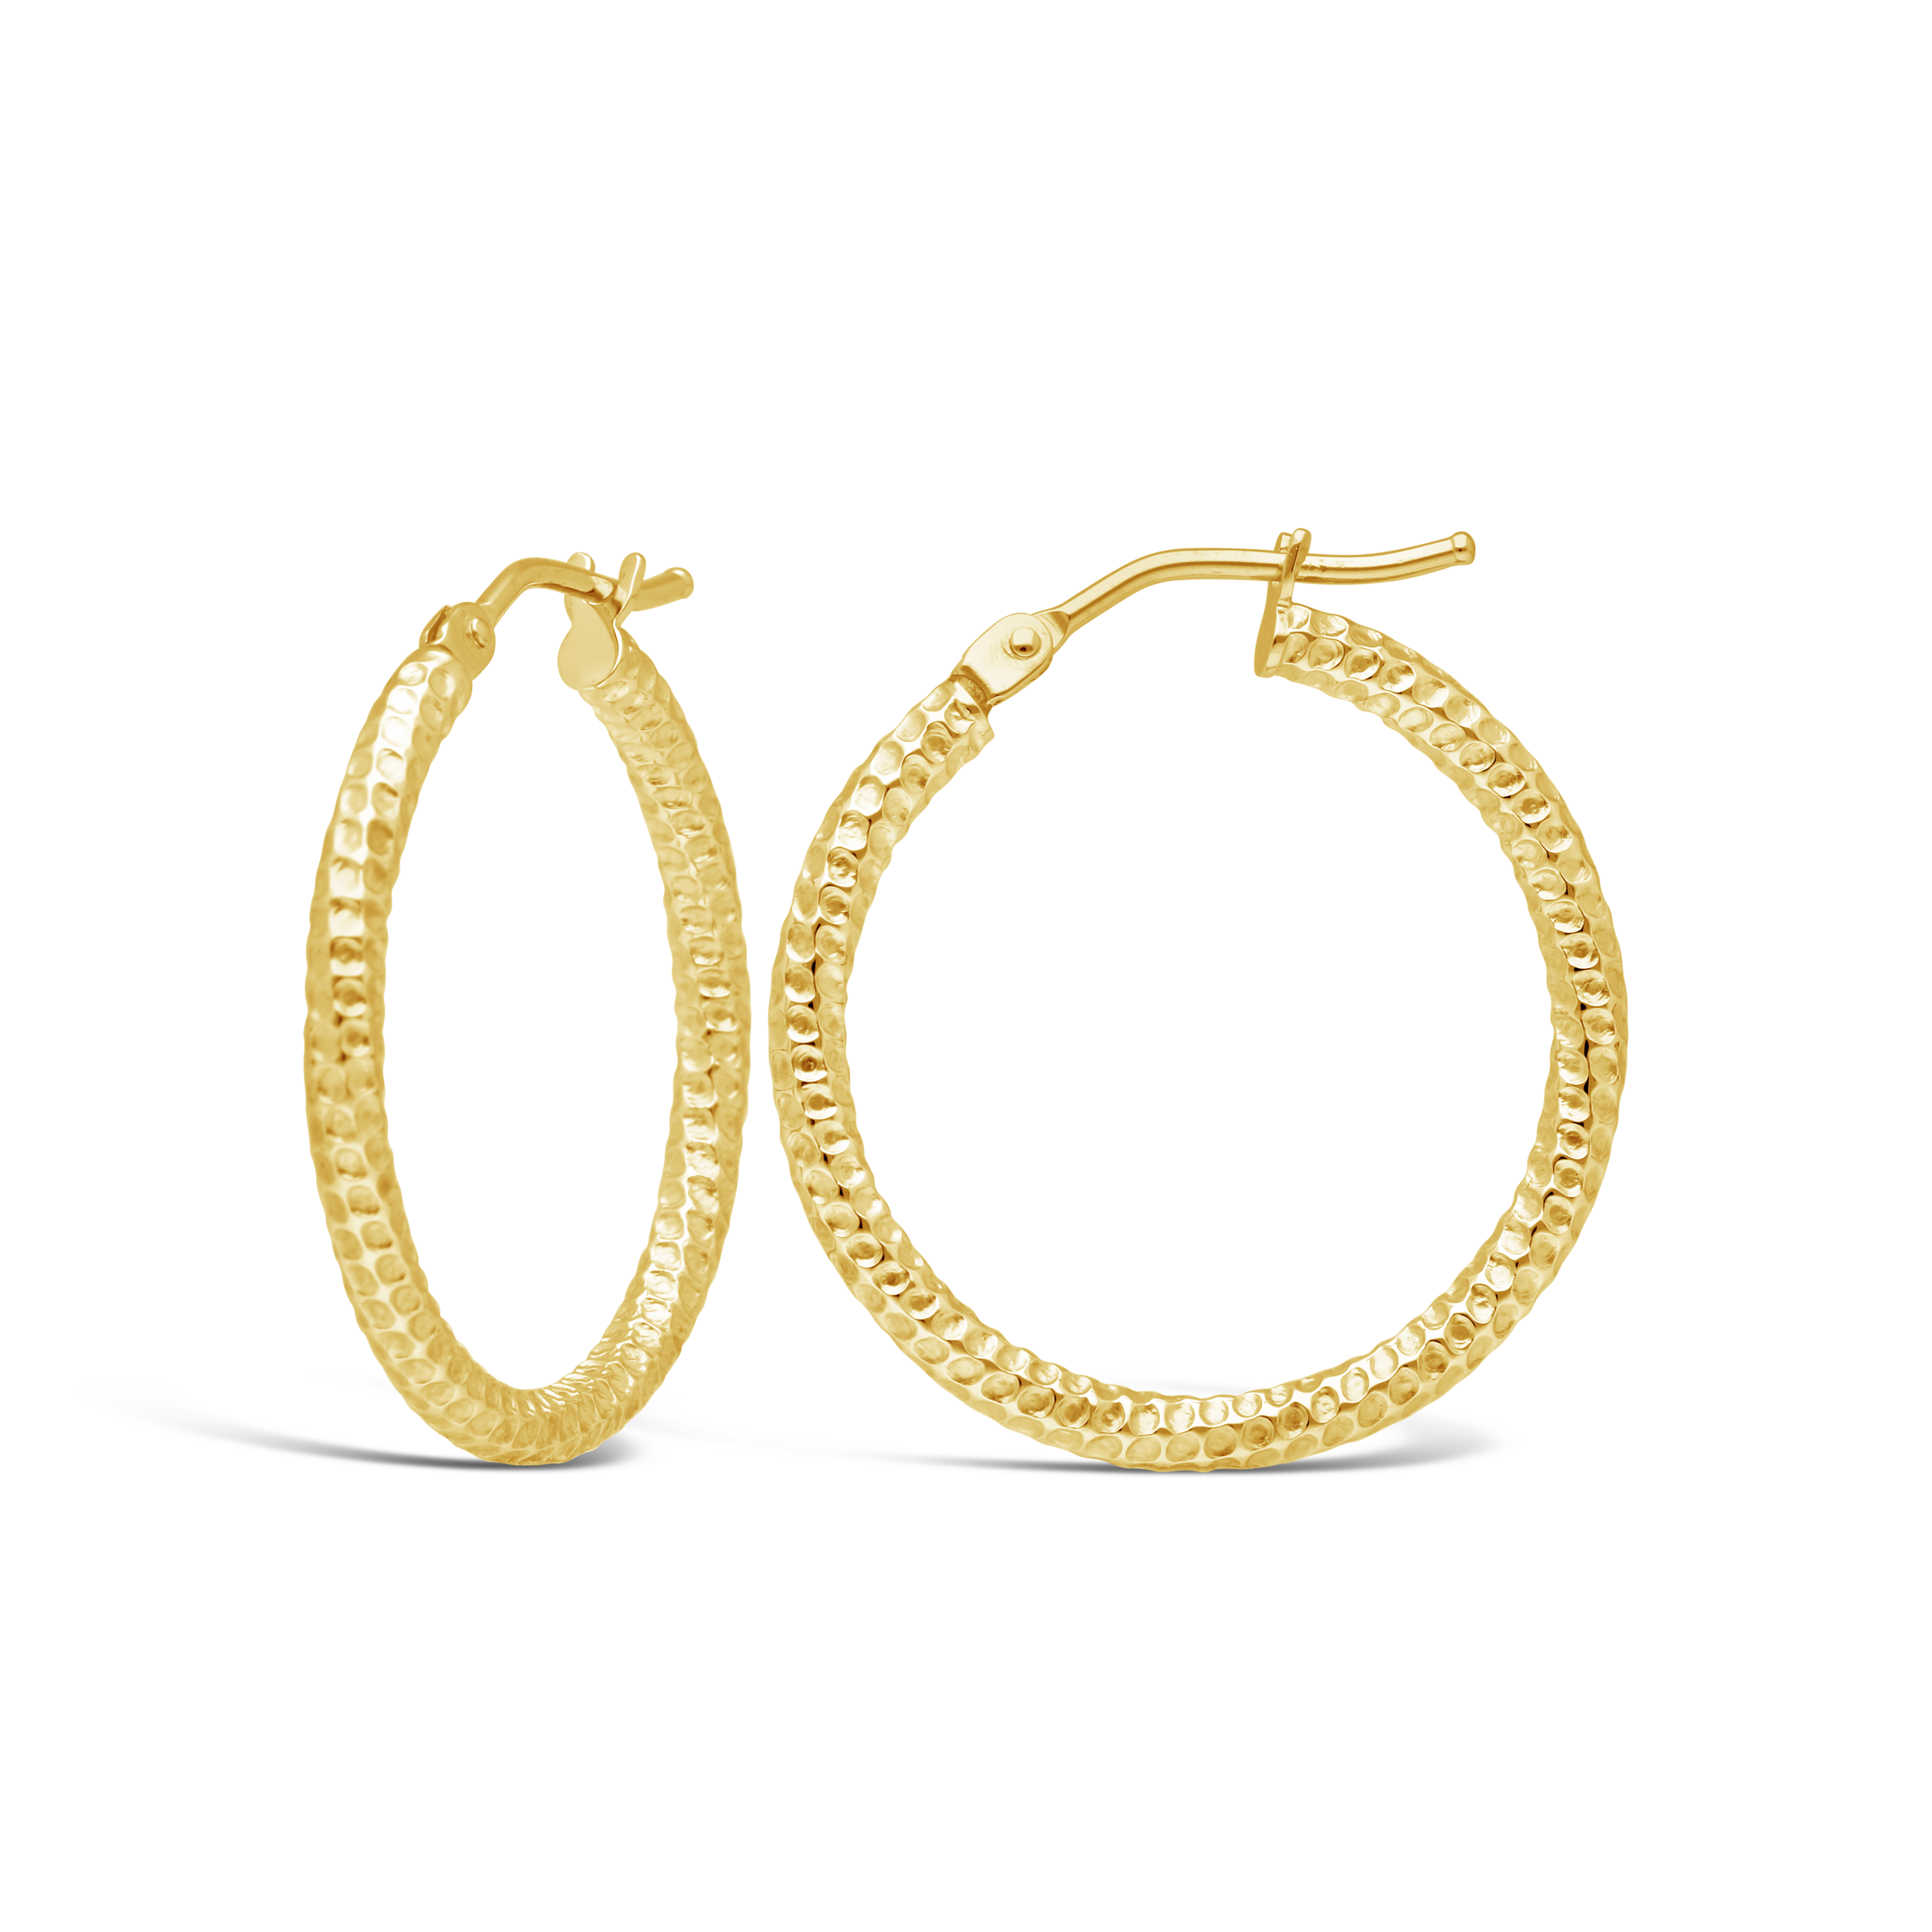 d732d3566f39 9ct Gold Mesh Hoop Earrings - NWJ